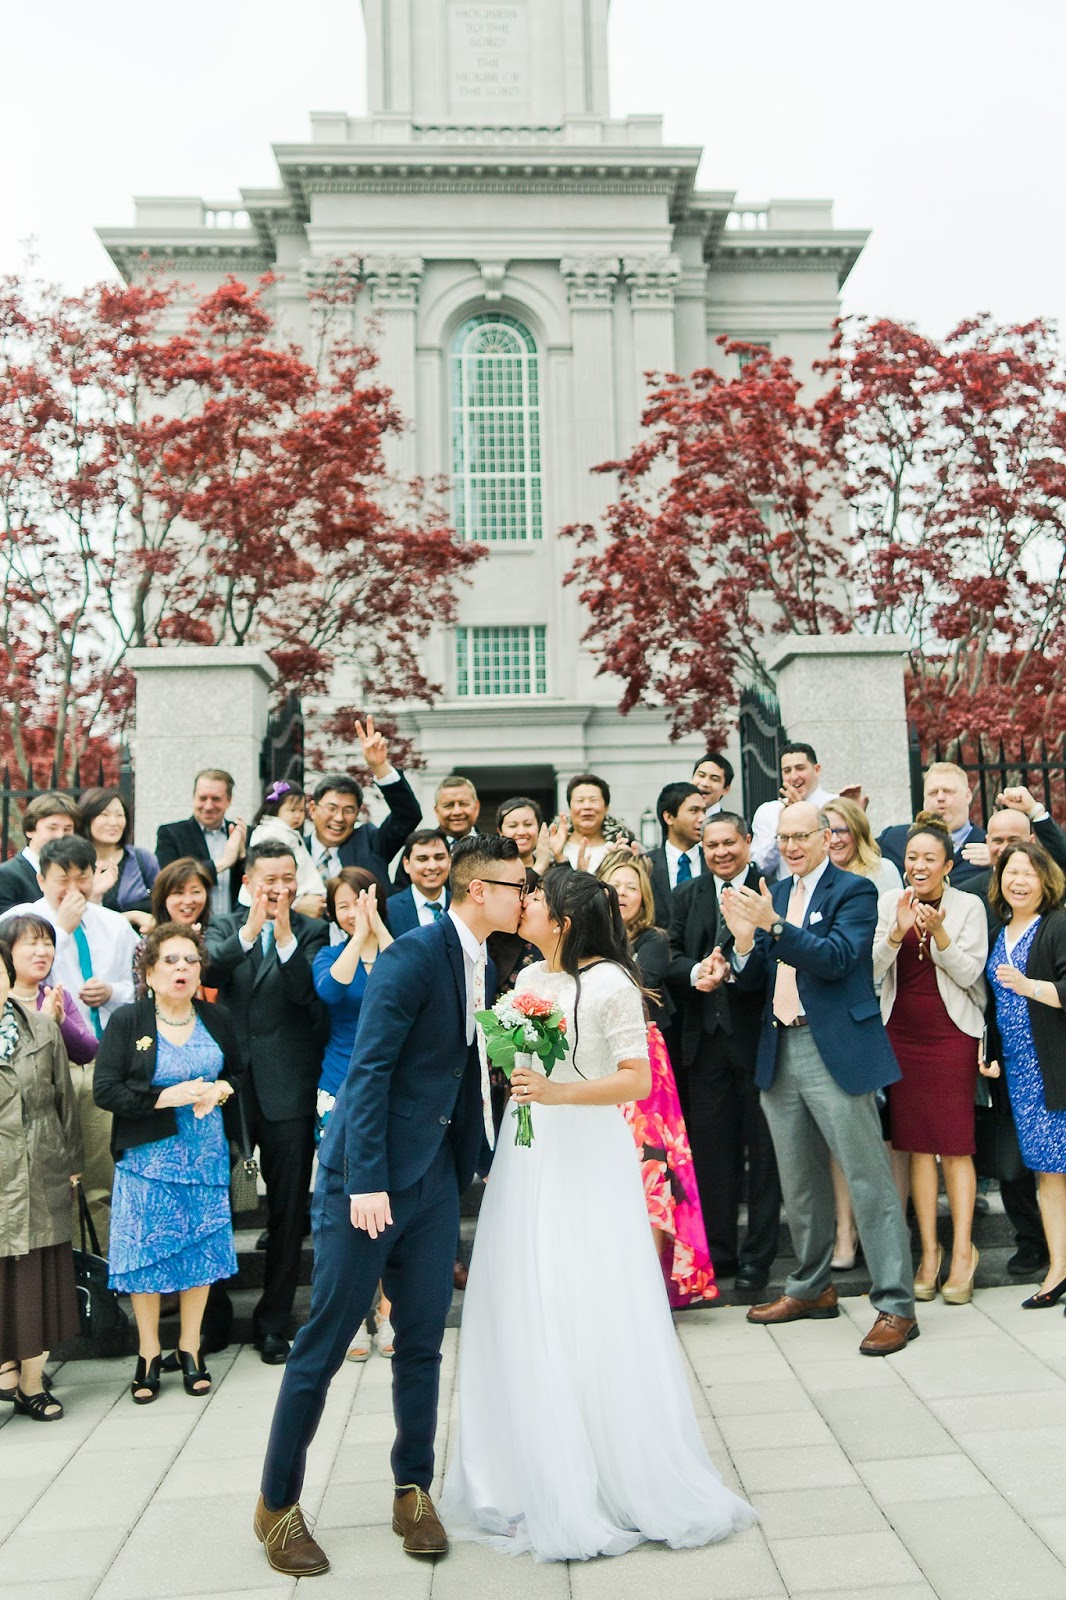 lds_philadelphia_temple_wedding_photography_006.jpg